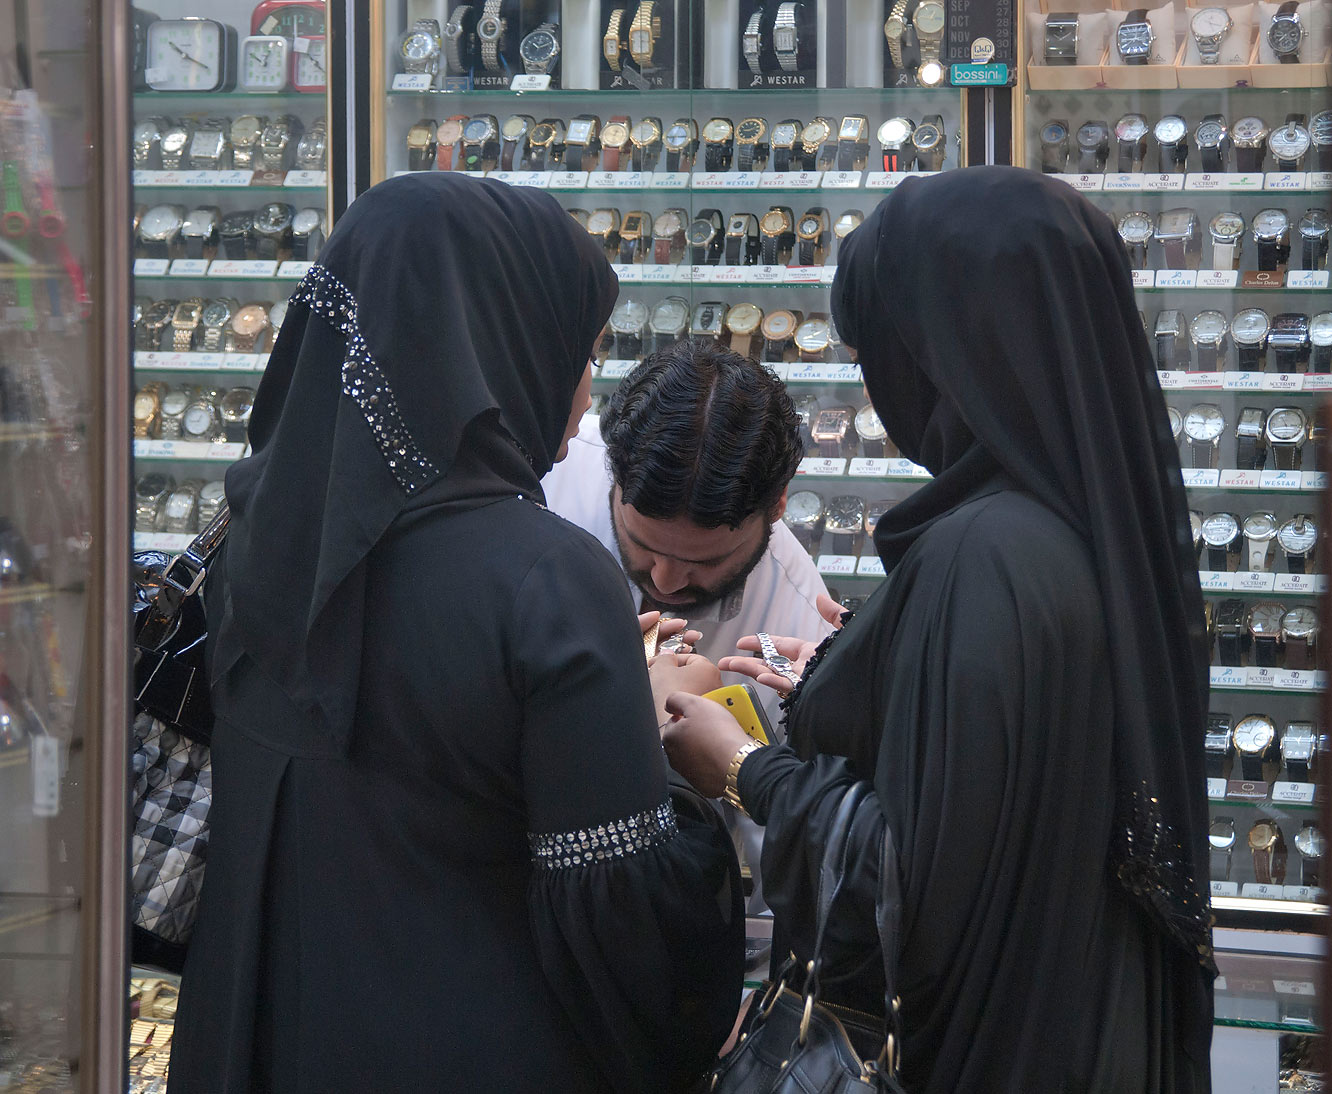 Women shopping for watches in Souq Waqif (Old Market). Doha, Qatar